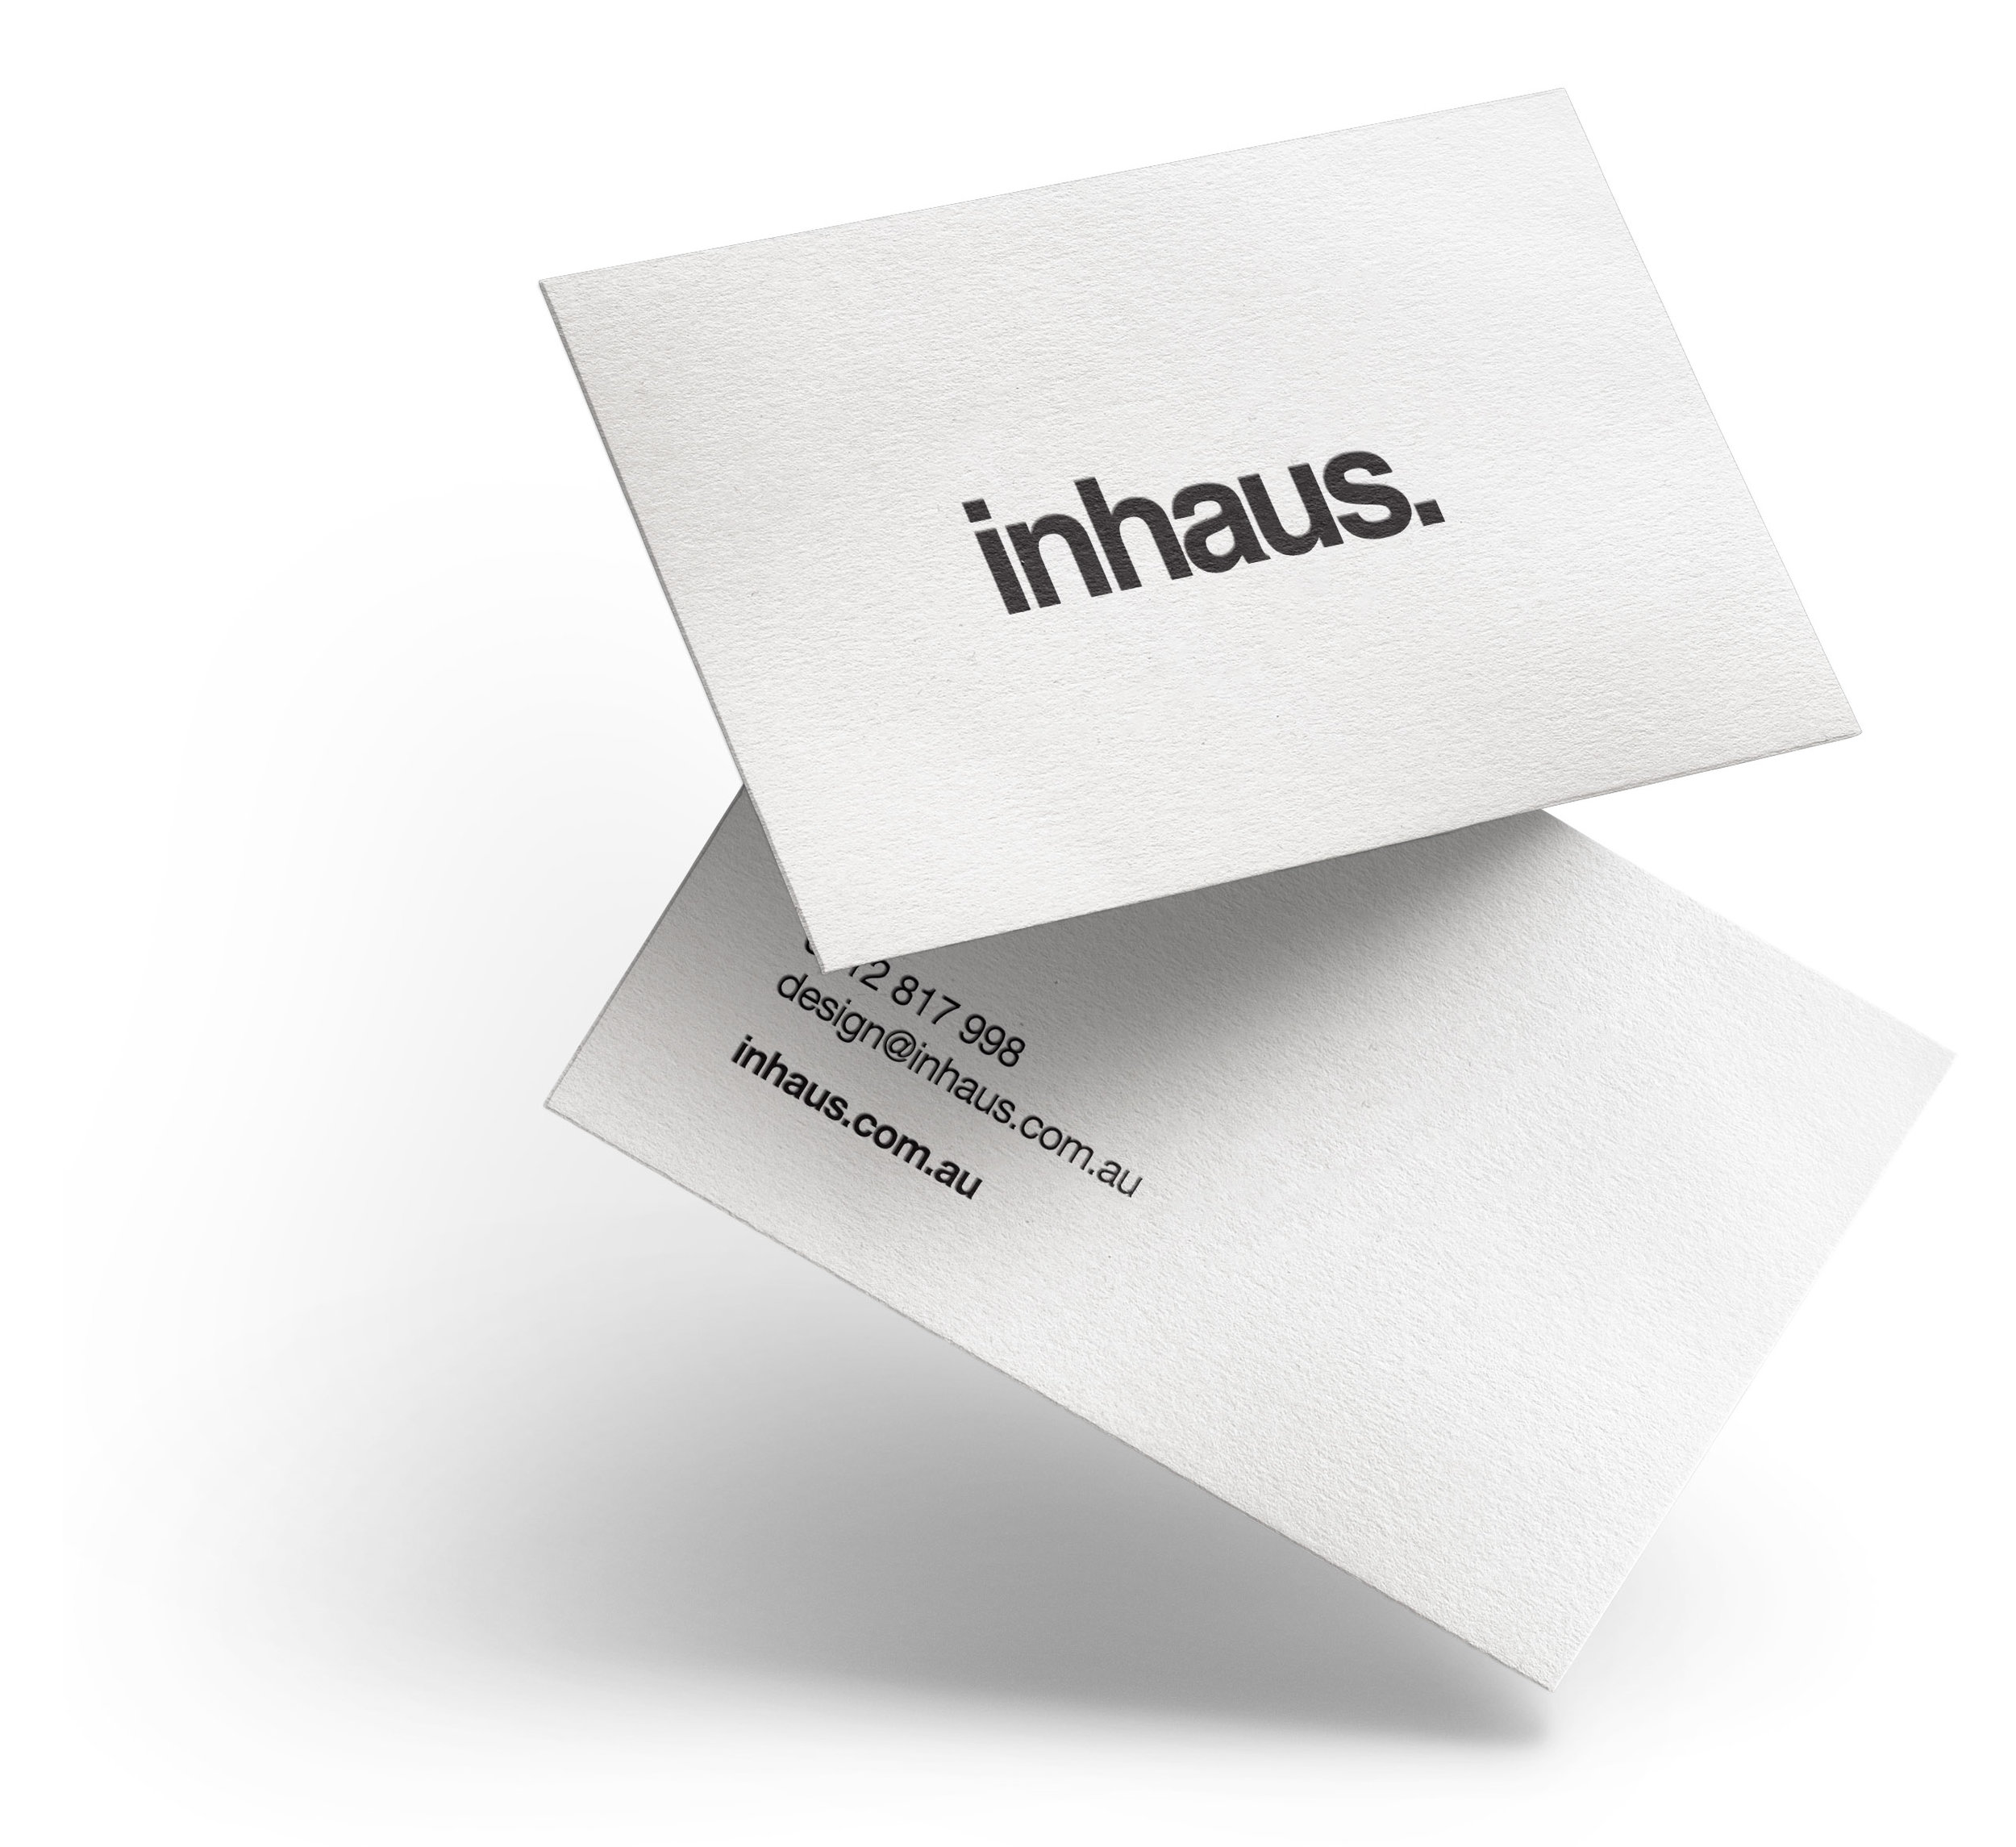 Business-Card-Psd-Mock-Up-Vol38 inhaus.jpg